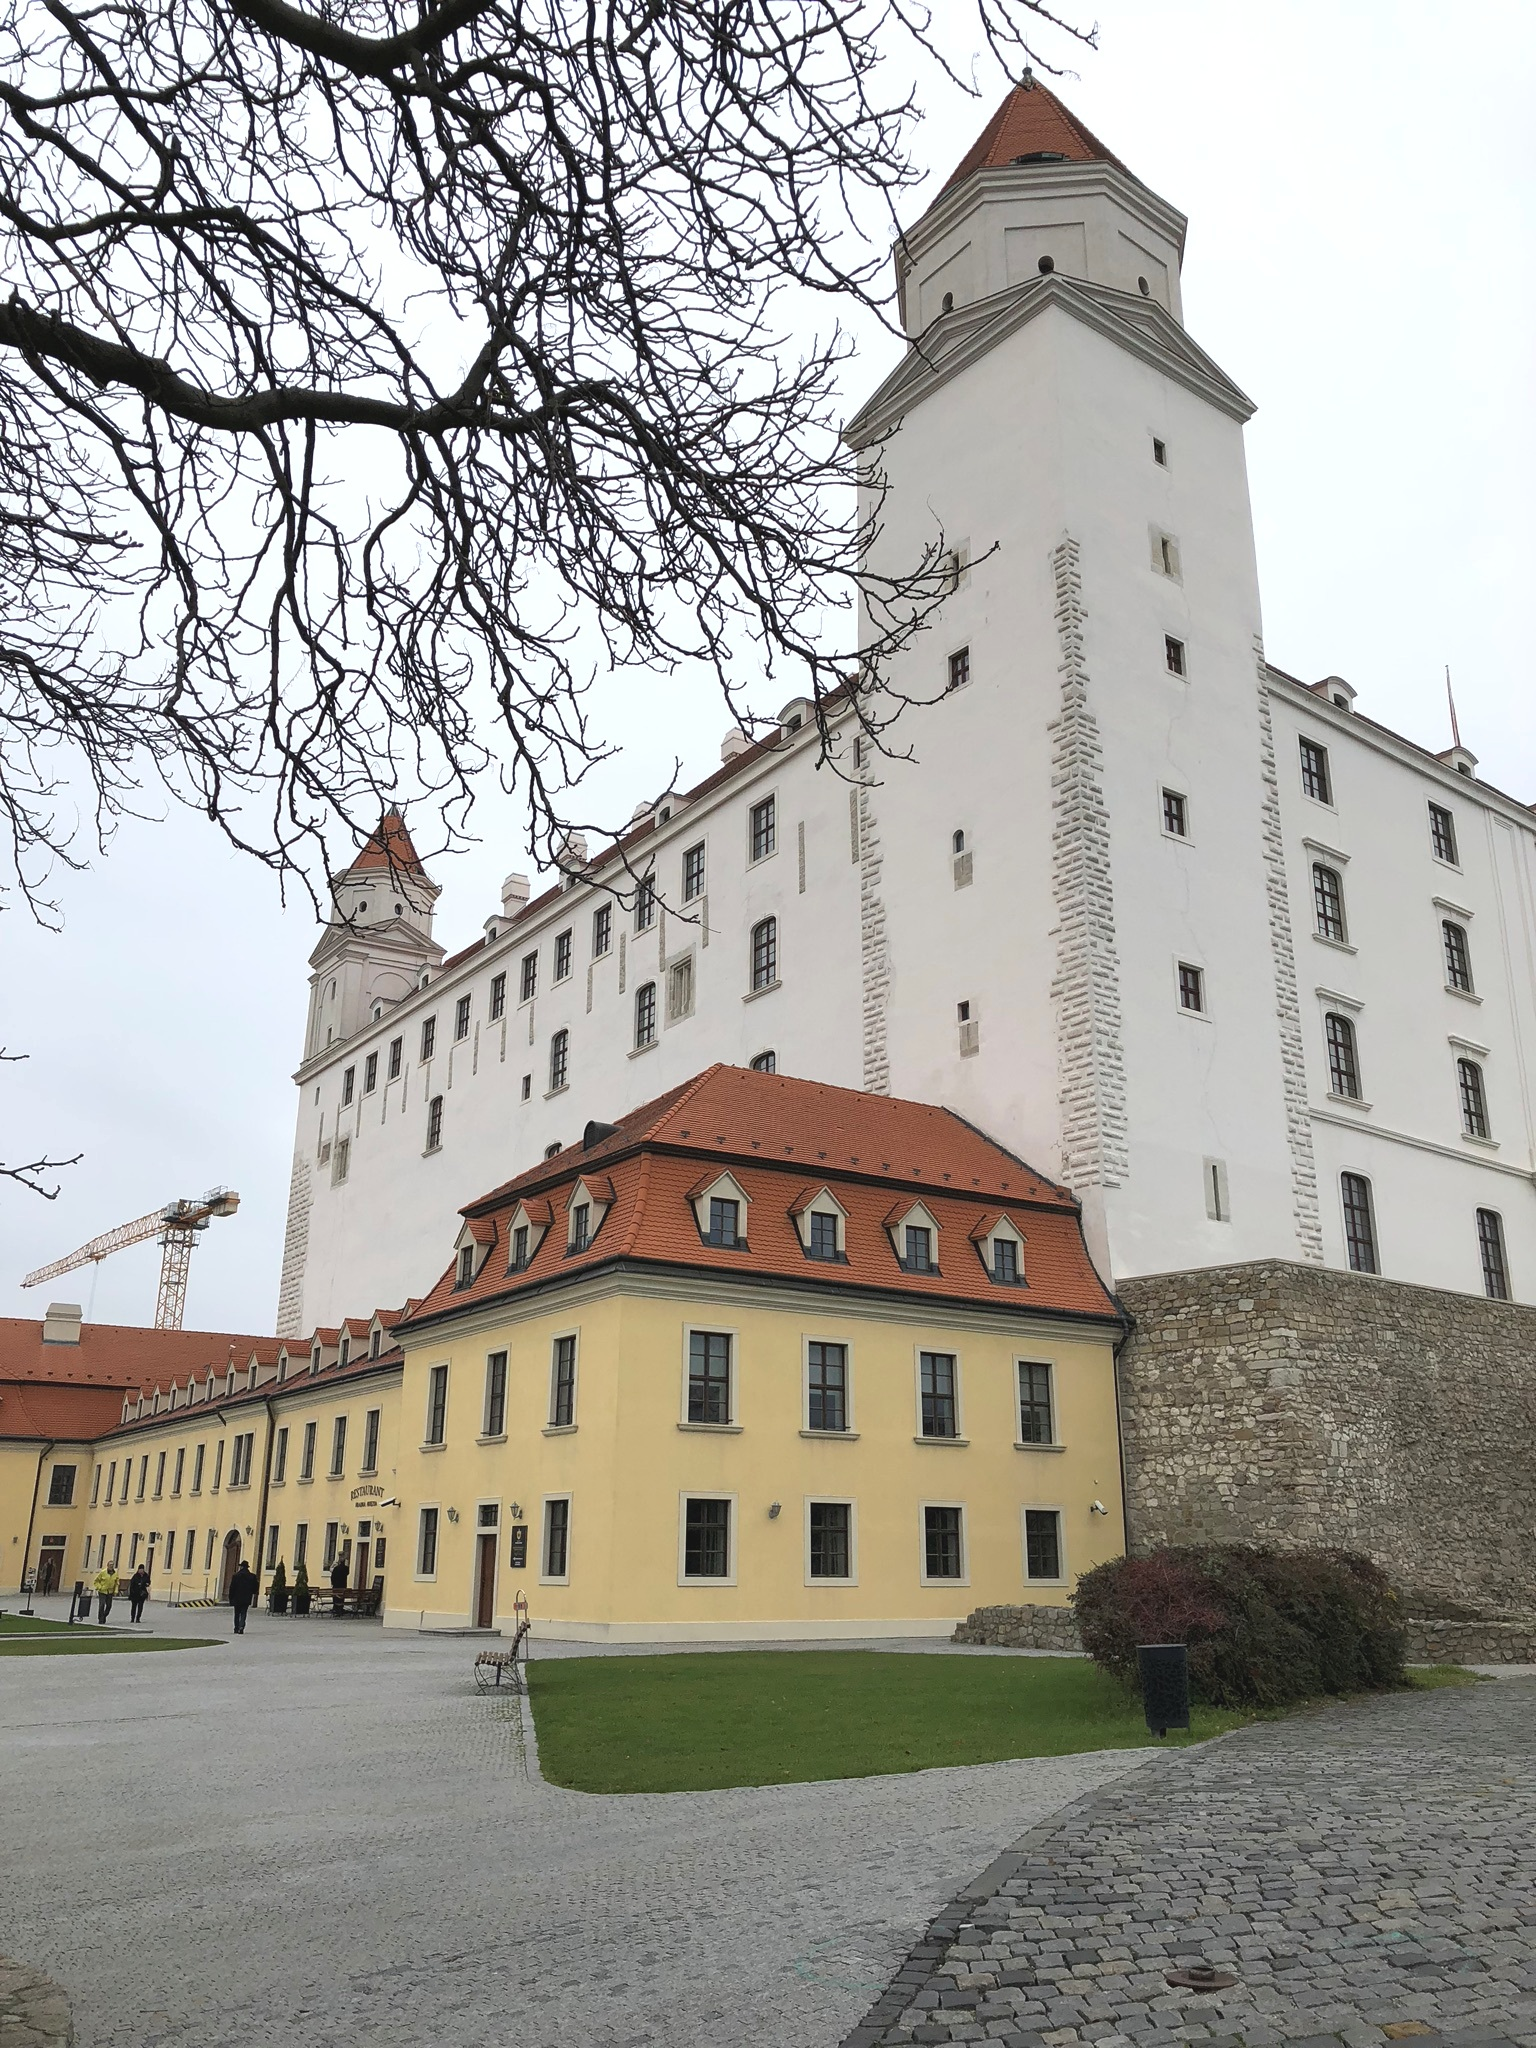 winter travel guide and tips for visiting bratislava, slovakia on livingforaged.com